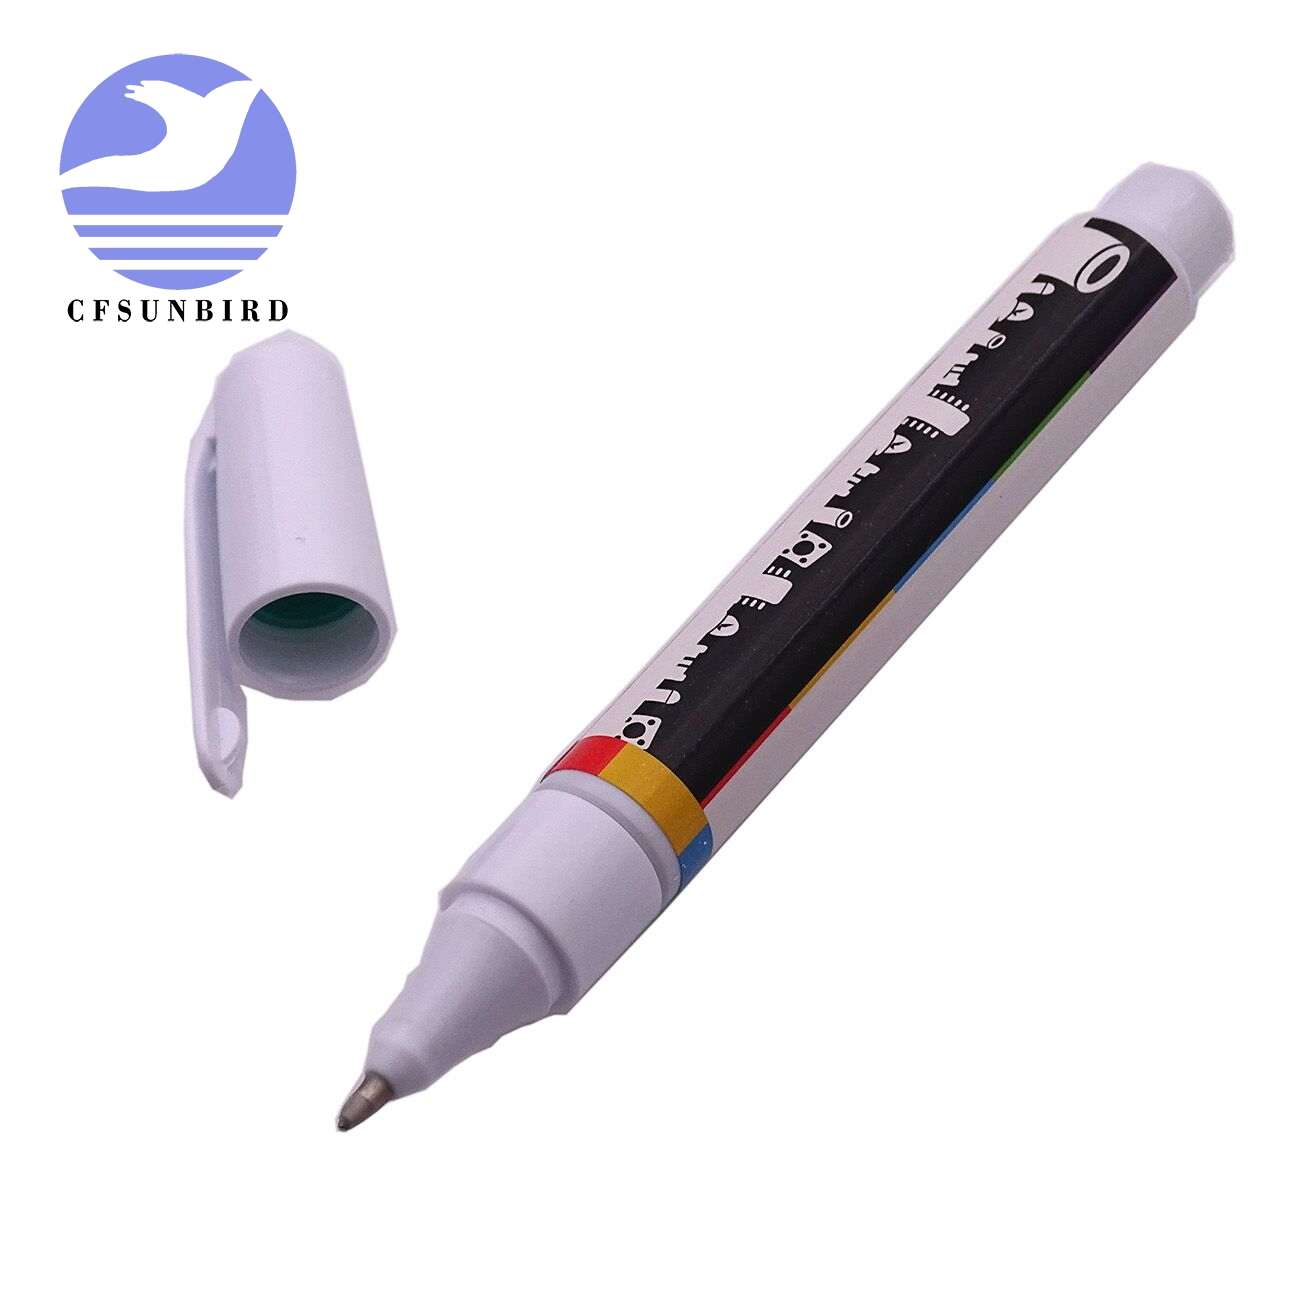 10PCS/LOT Conductive Ink Pen Electronic Circuit Draw Instantly Magical Pen Circuit DIY Maker Student Kids Education(China)